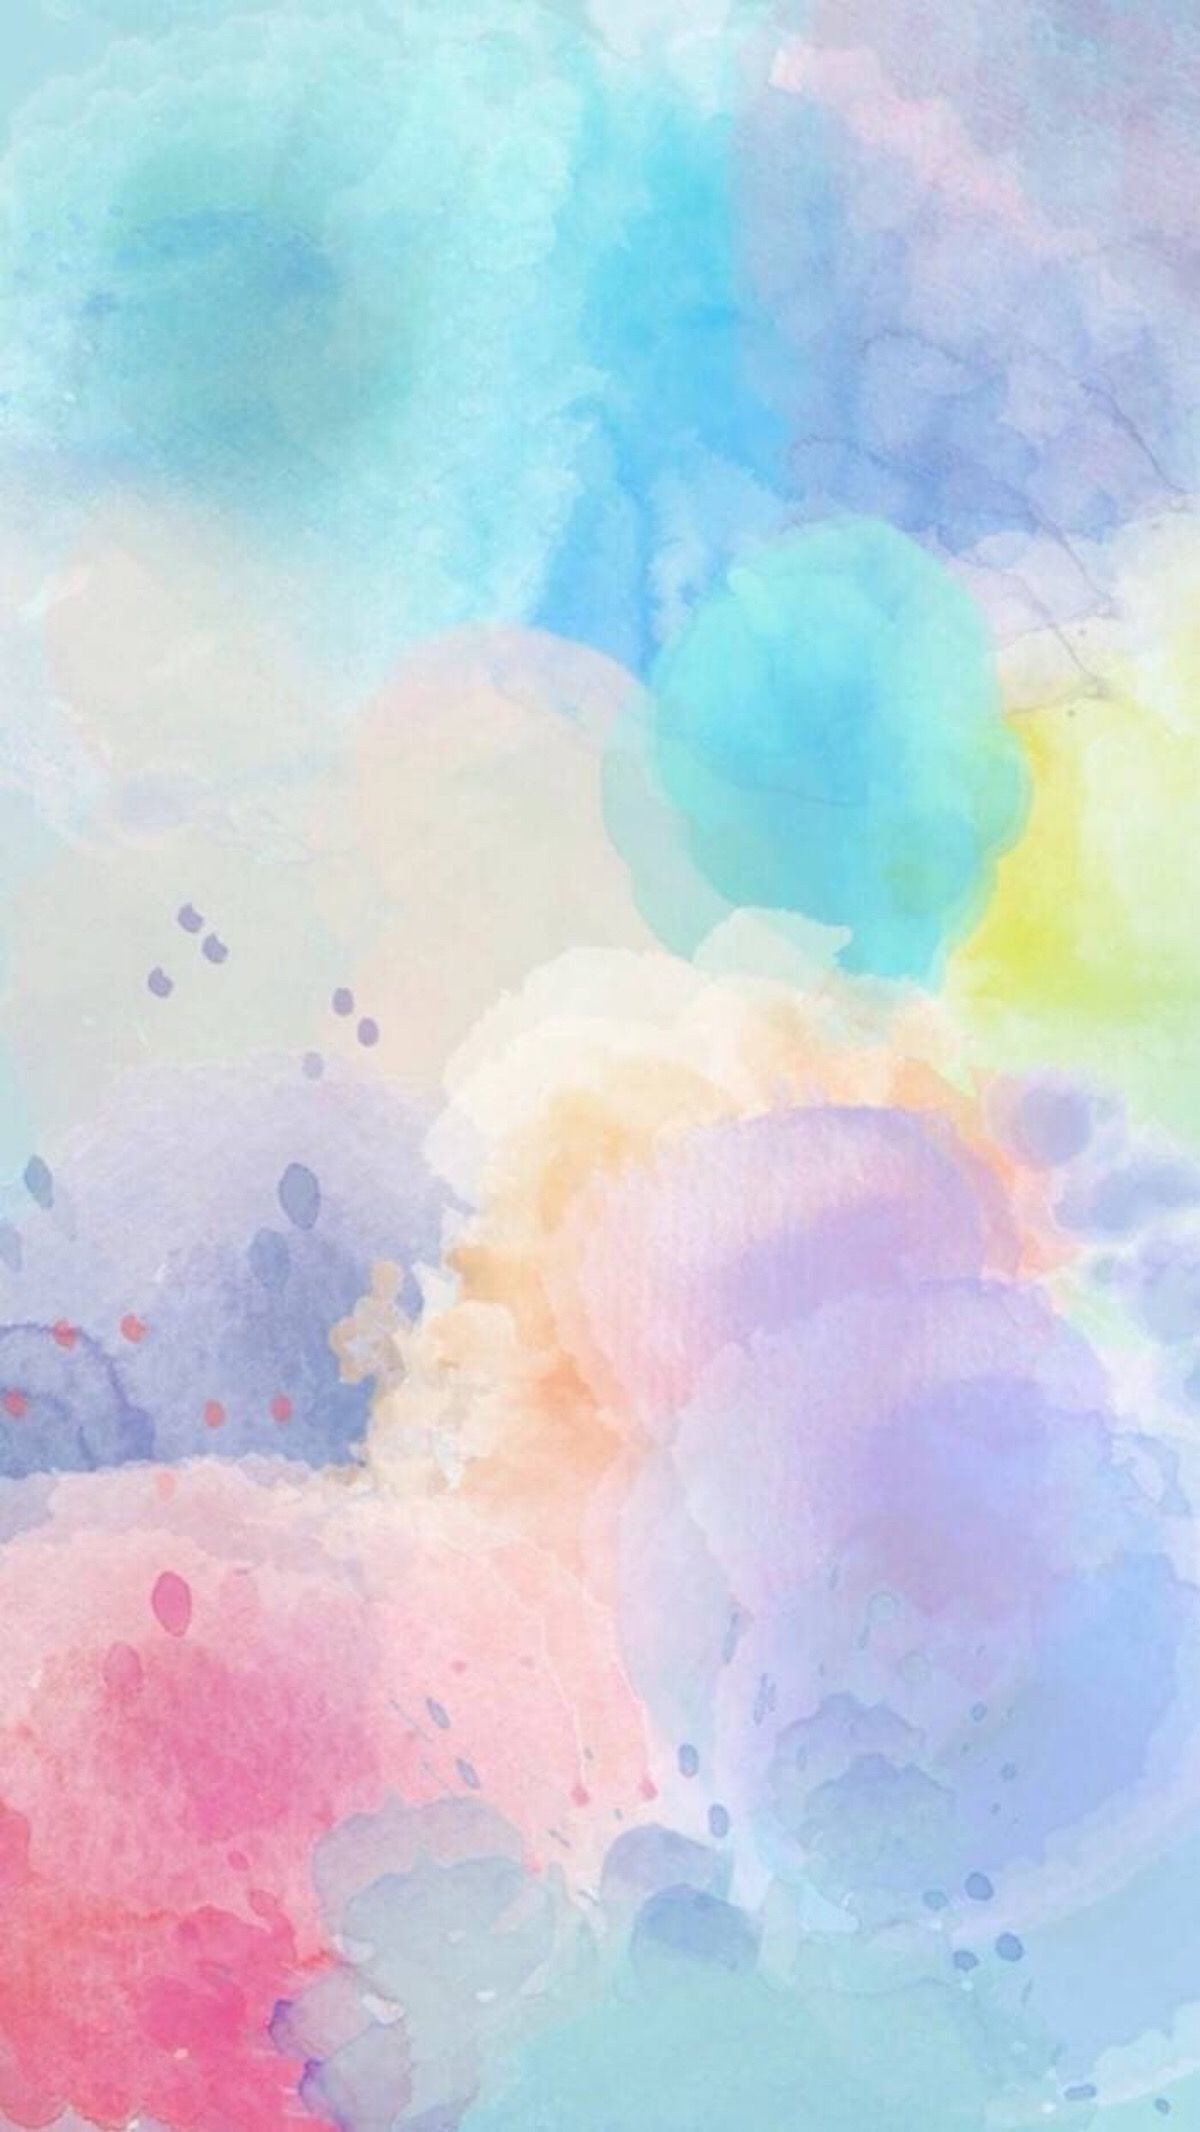 Download The Choice Of Your Free Watercolor Peach Wallpapers - Background For Whatsapp Status , HD Wallpaper & Backgrounds